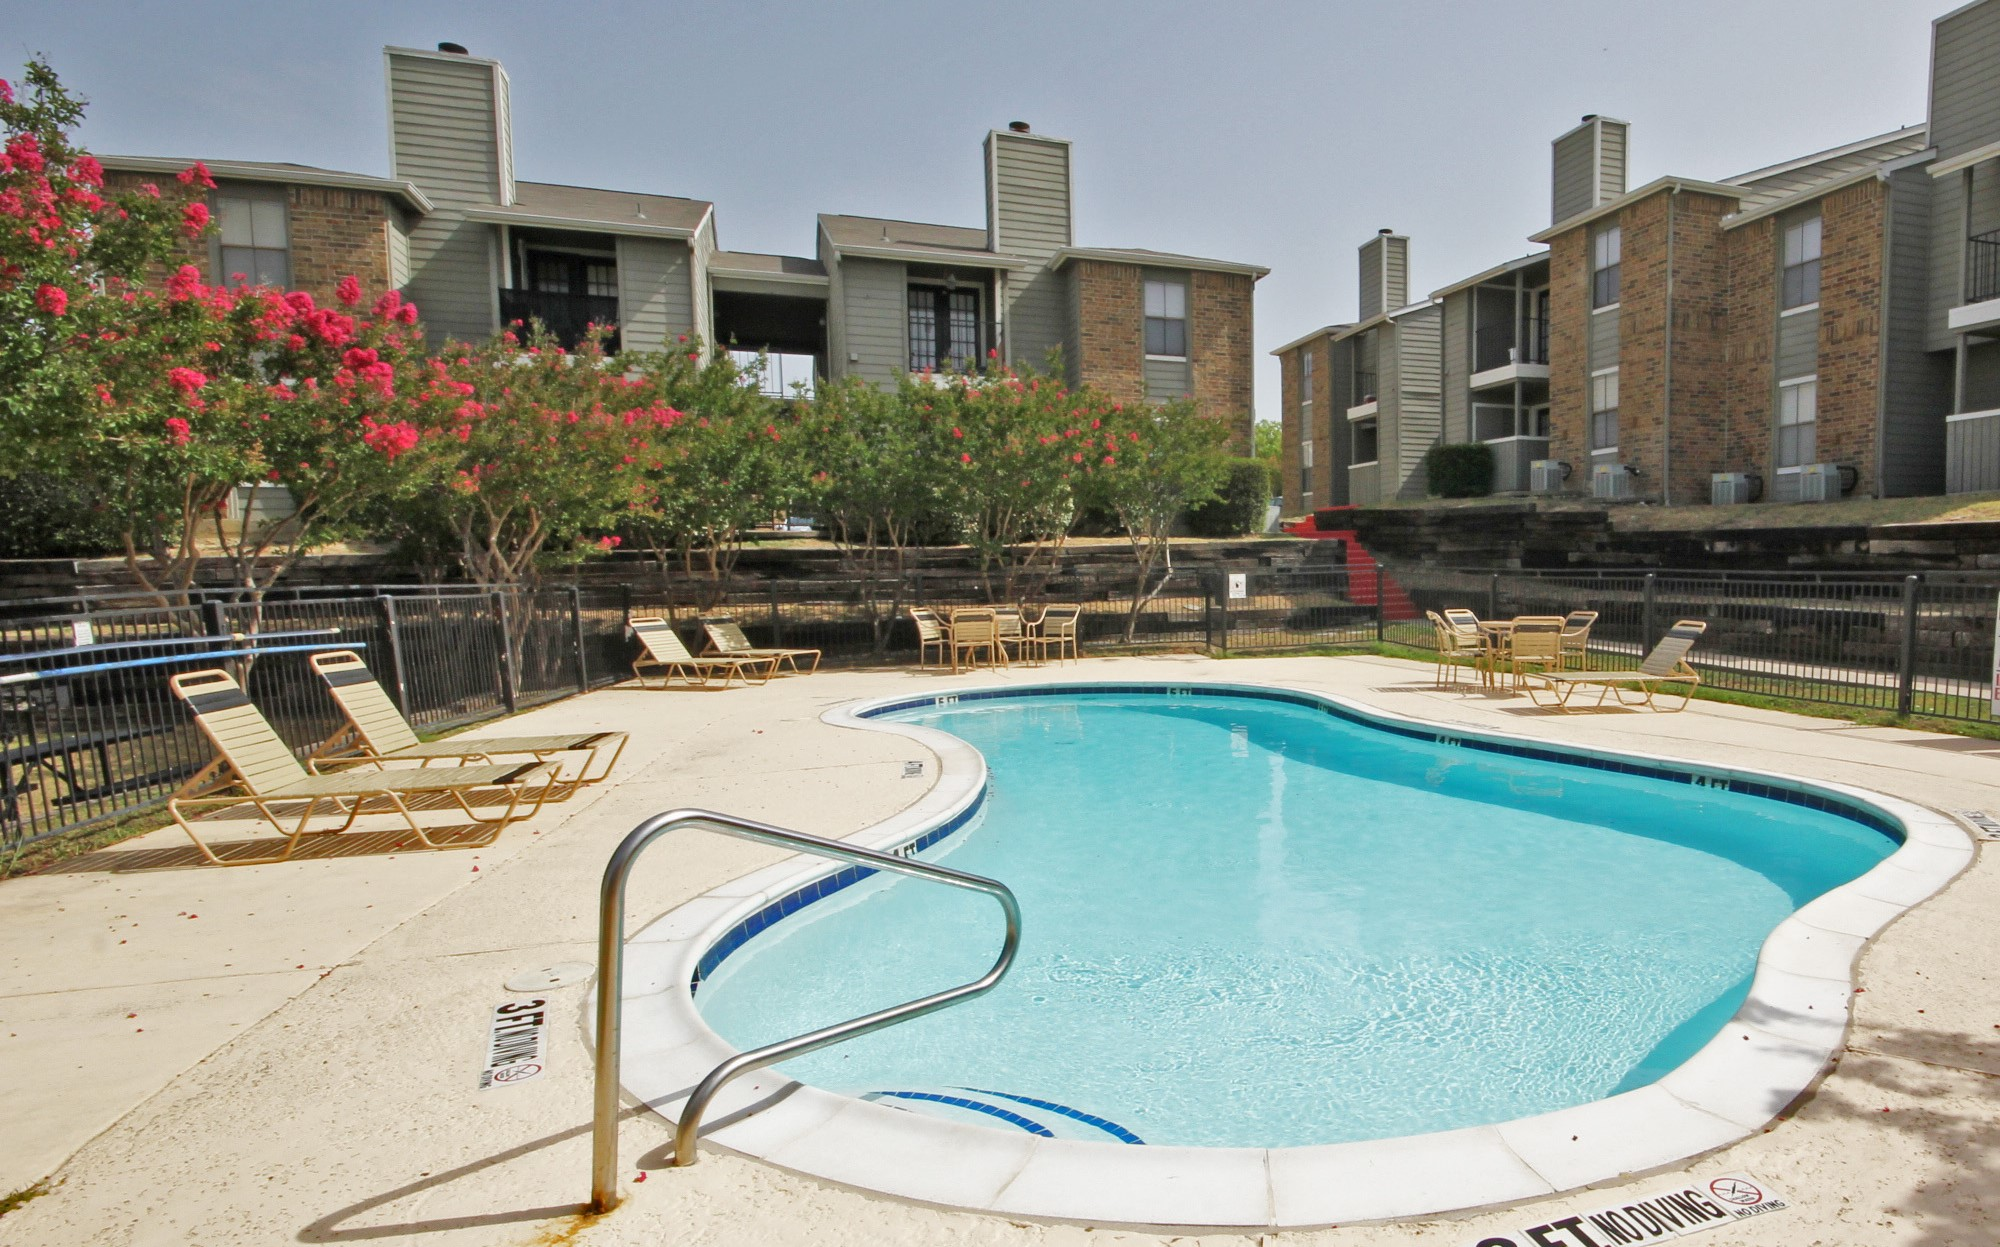 Sparkling, Relaxing Pool at Marine Creek in Fort Worth, Texas